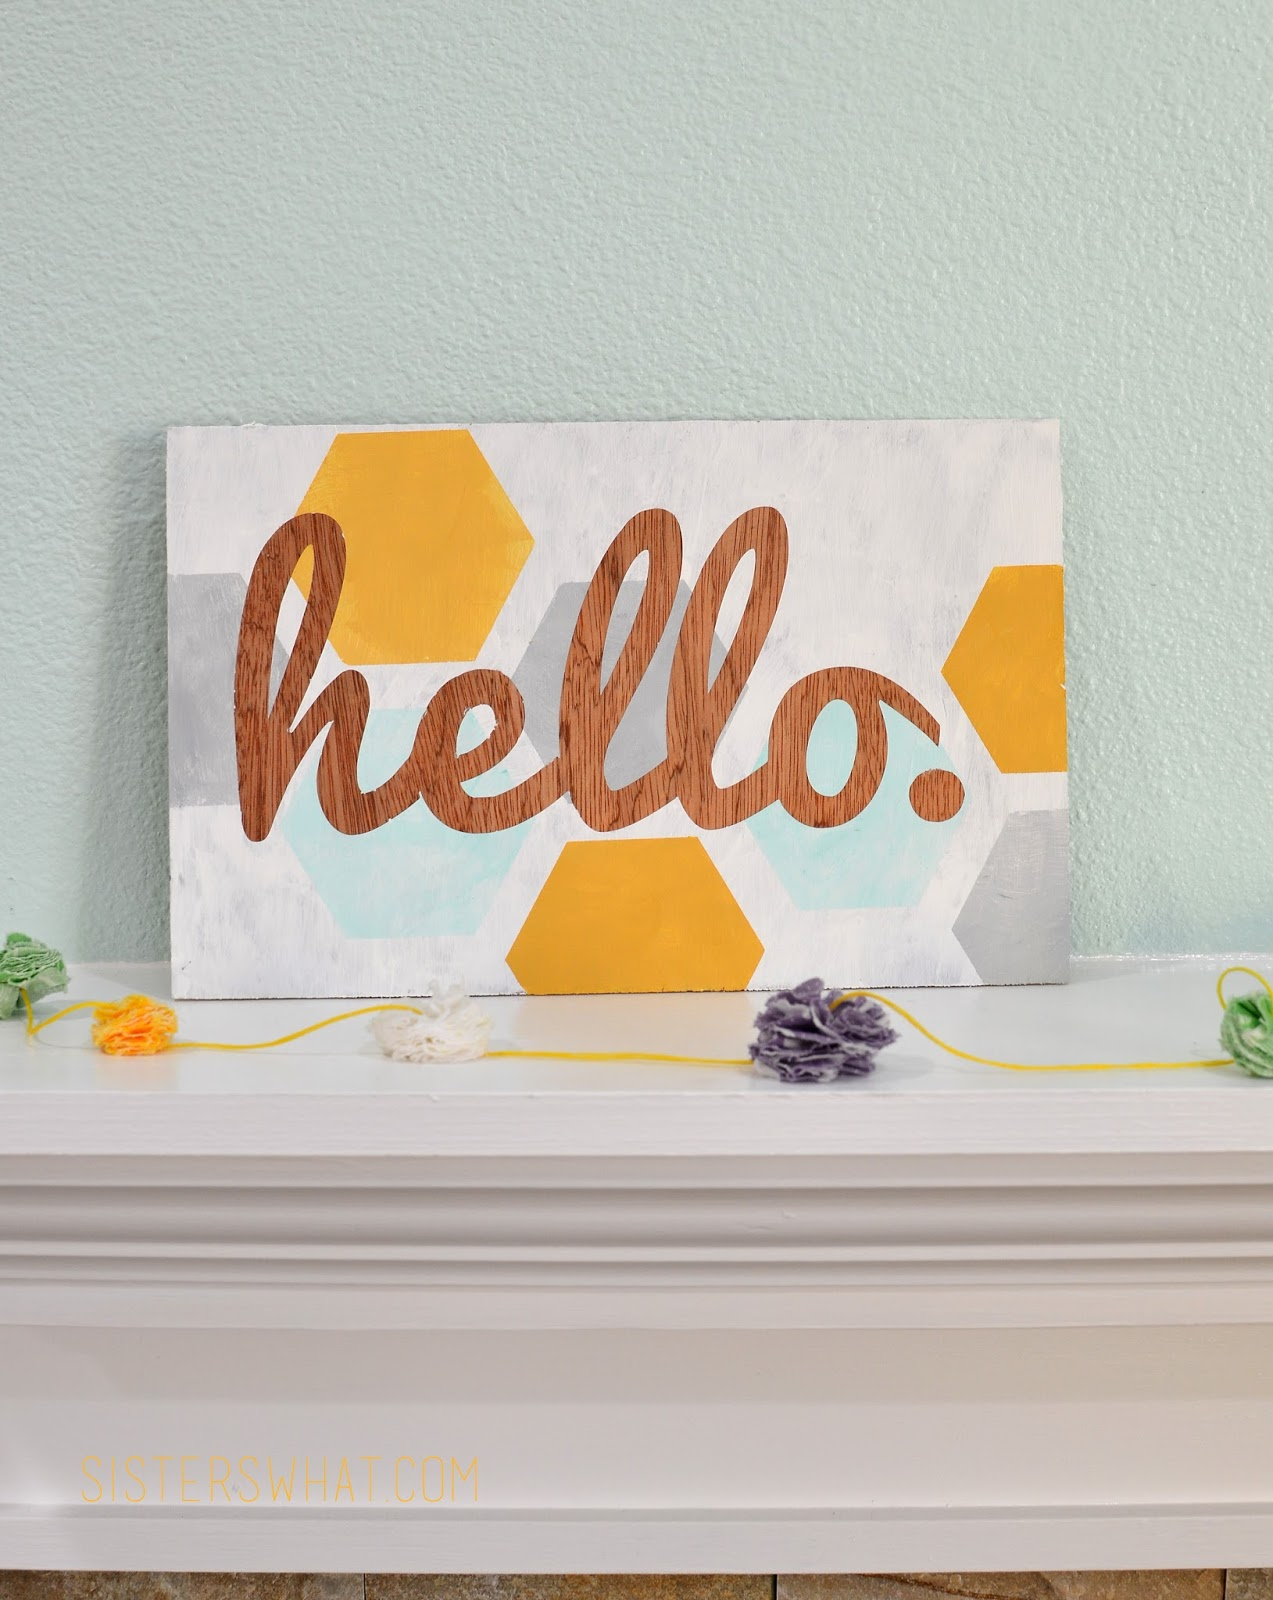 This Printable Hello Hexagon Sign will be the perfect addition to your modern decor with it's geometric shapes and bright colors!